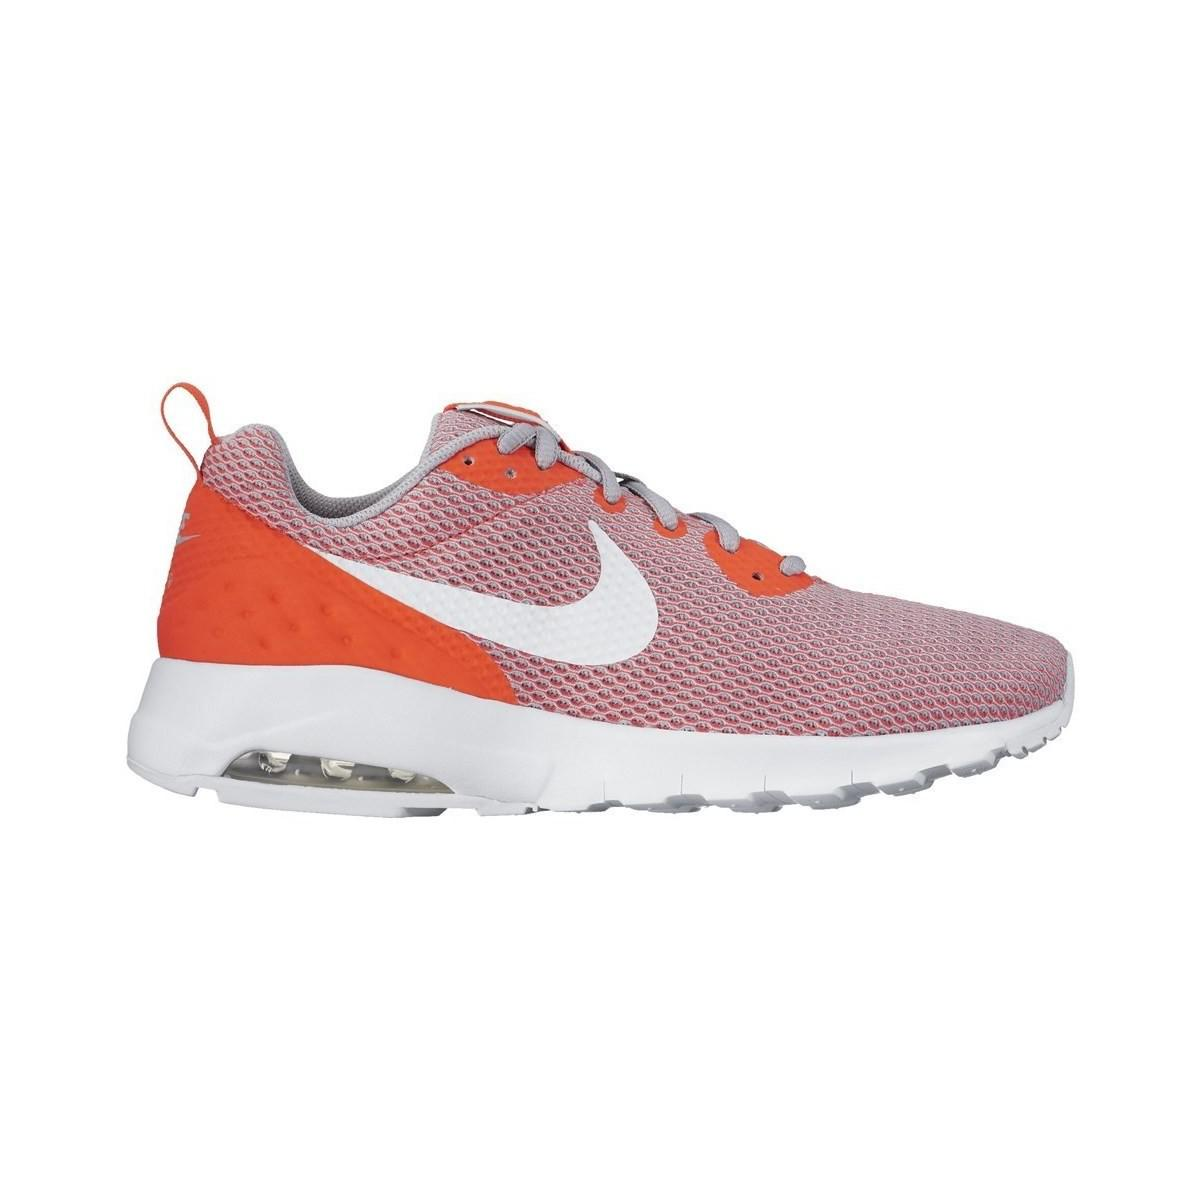 698f6e874f127b Nike Air Max Motion Lw Se Men s Shoes (trainers) In Red in Red for ...